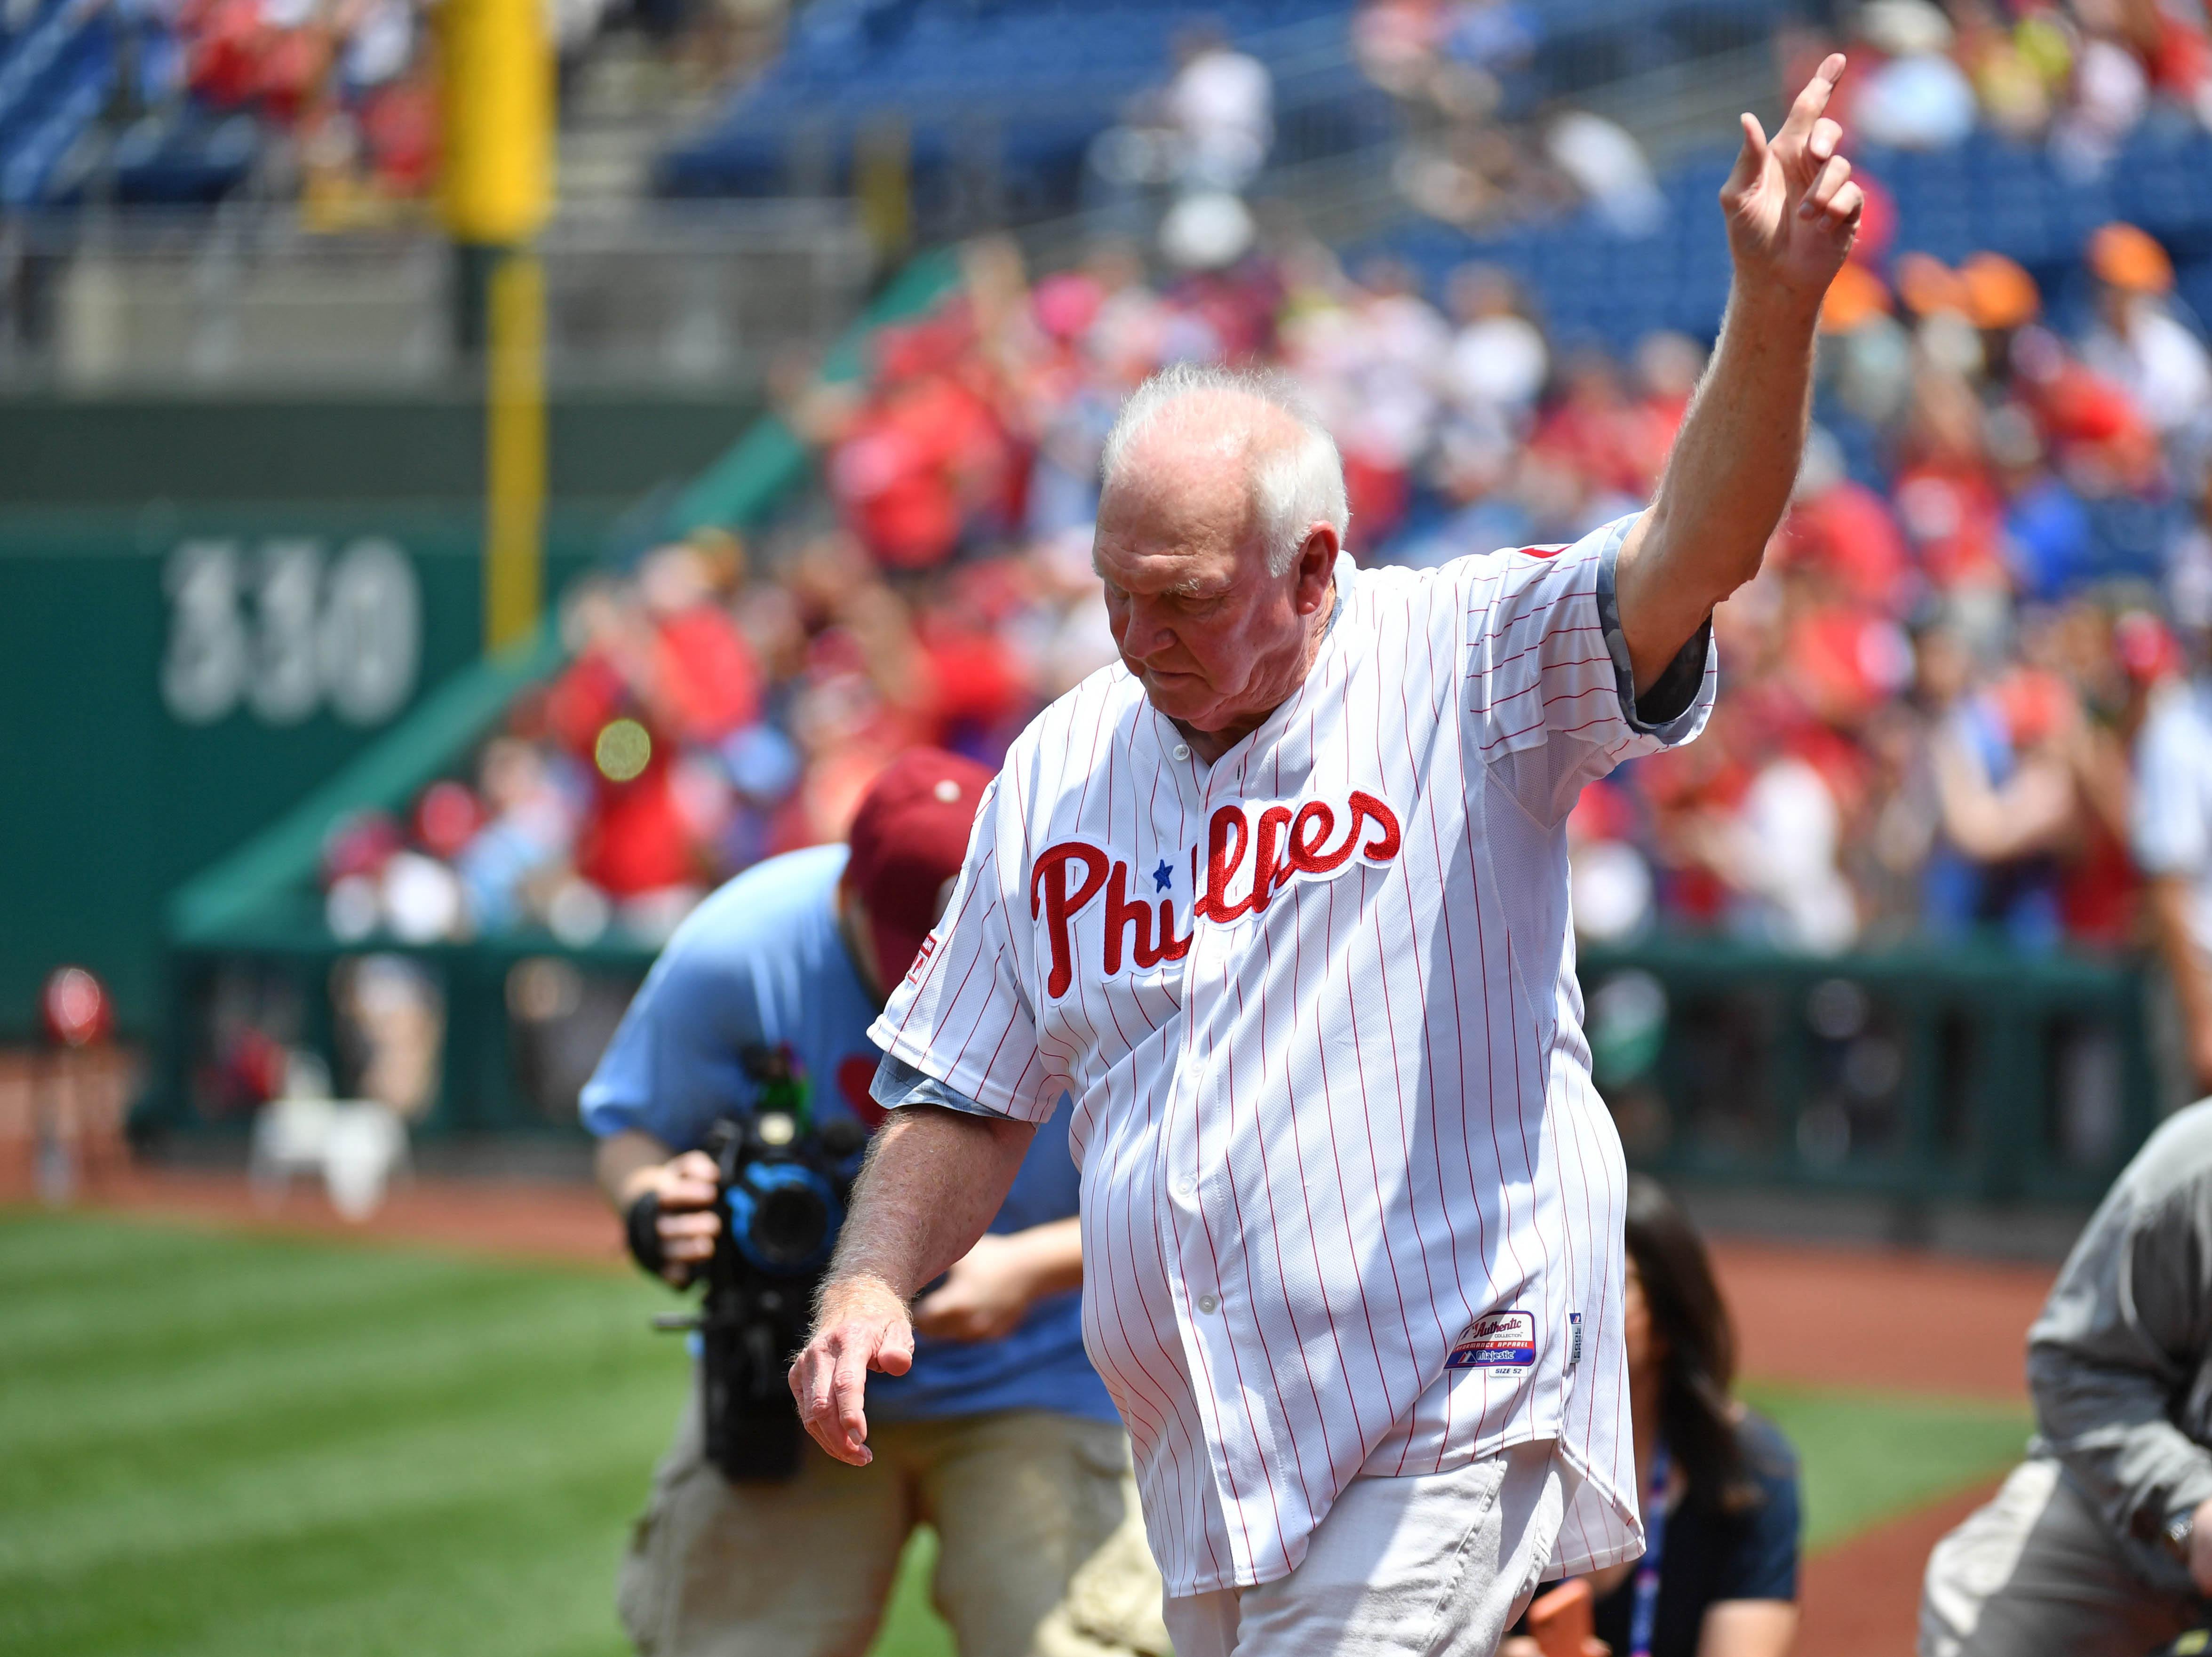 Philadelphia Phillies bring back Charlie Manuel, name him new hitting coach